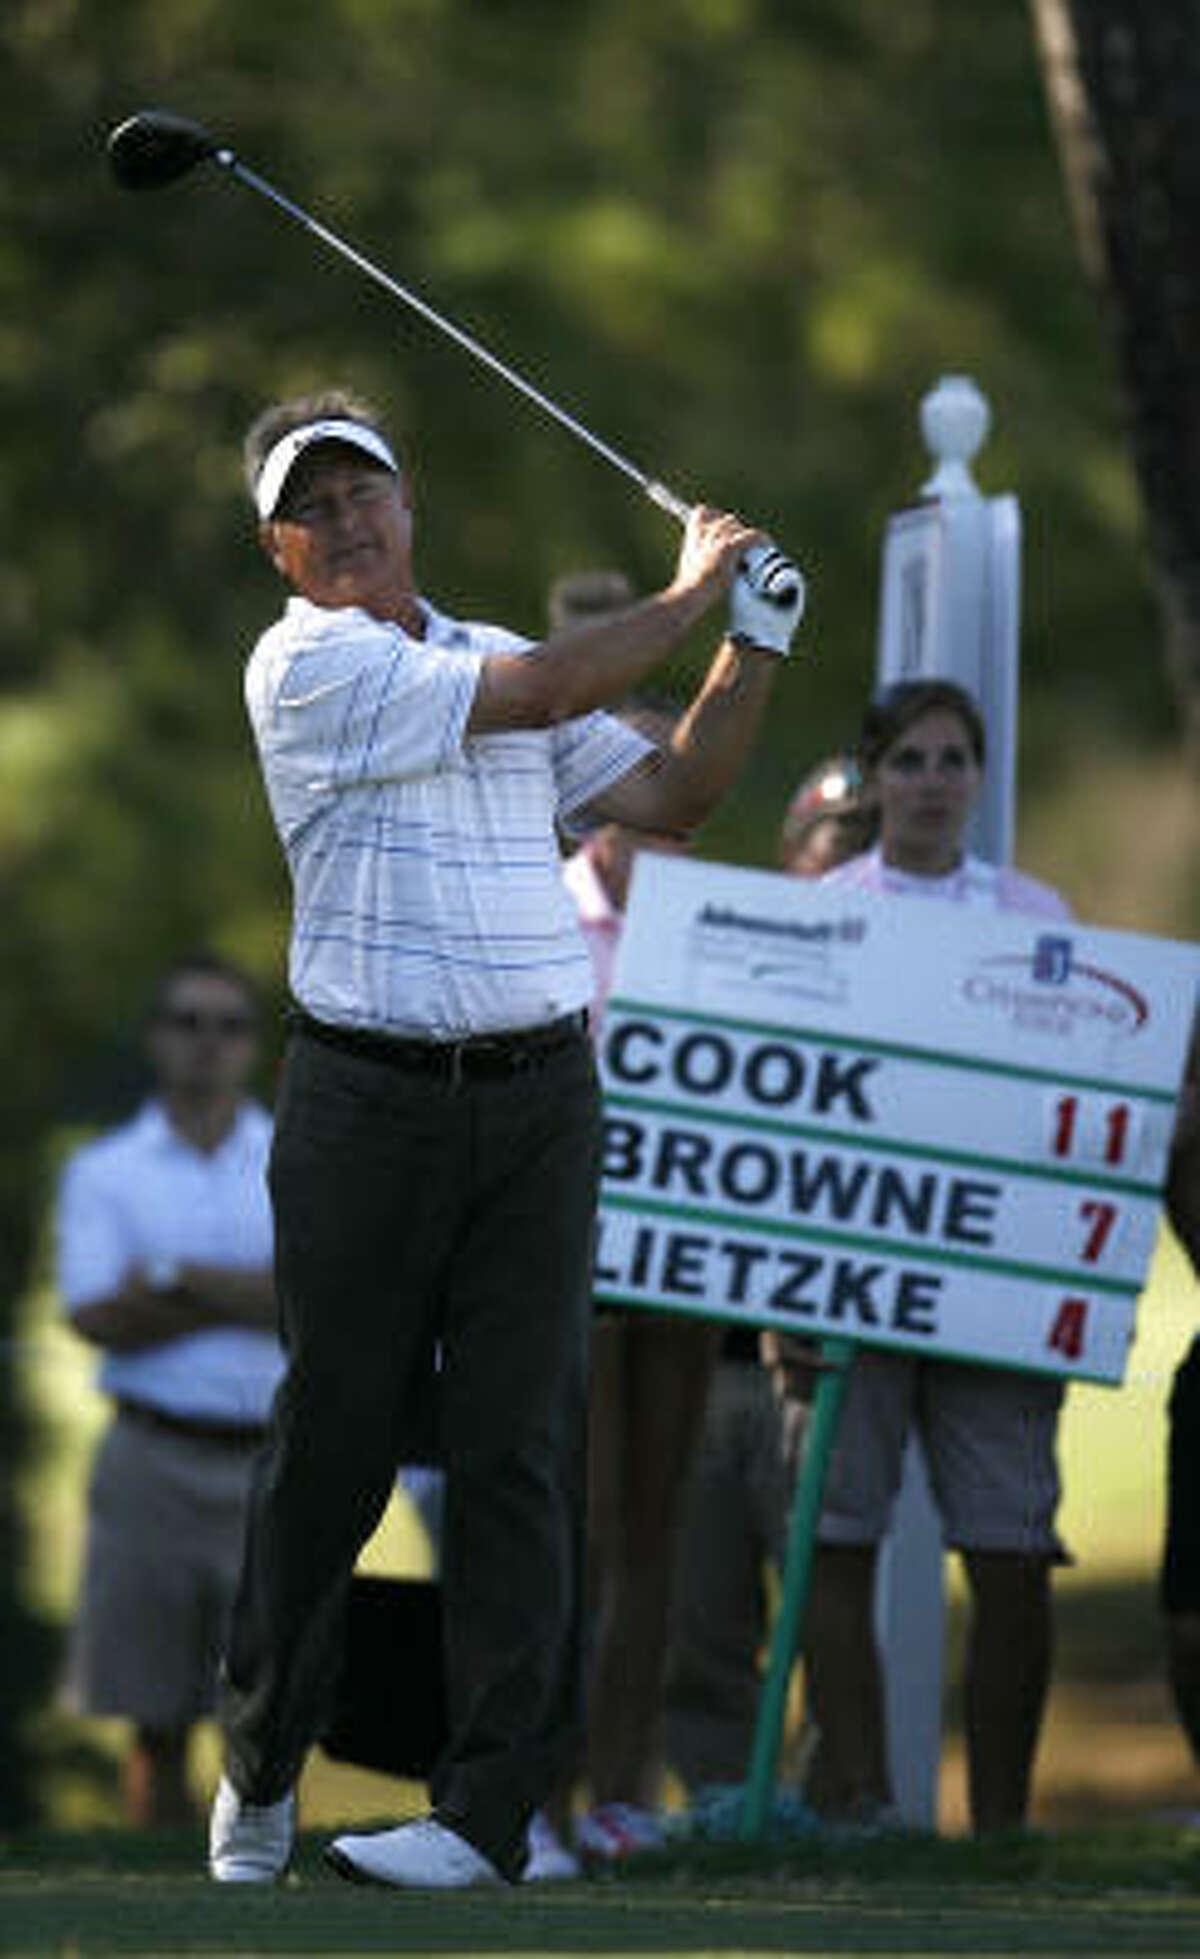 John Cook won the Administaff Small Business Classic with a score of 11-under par Sunday at The Woodlands Country Club.